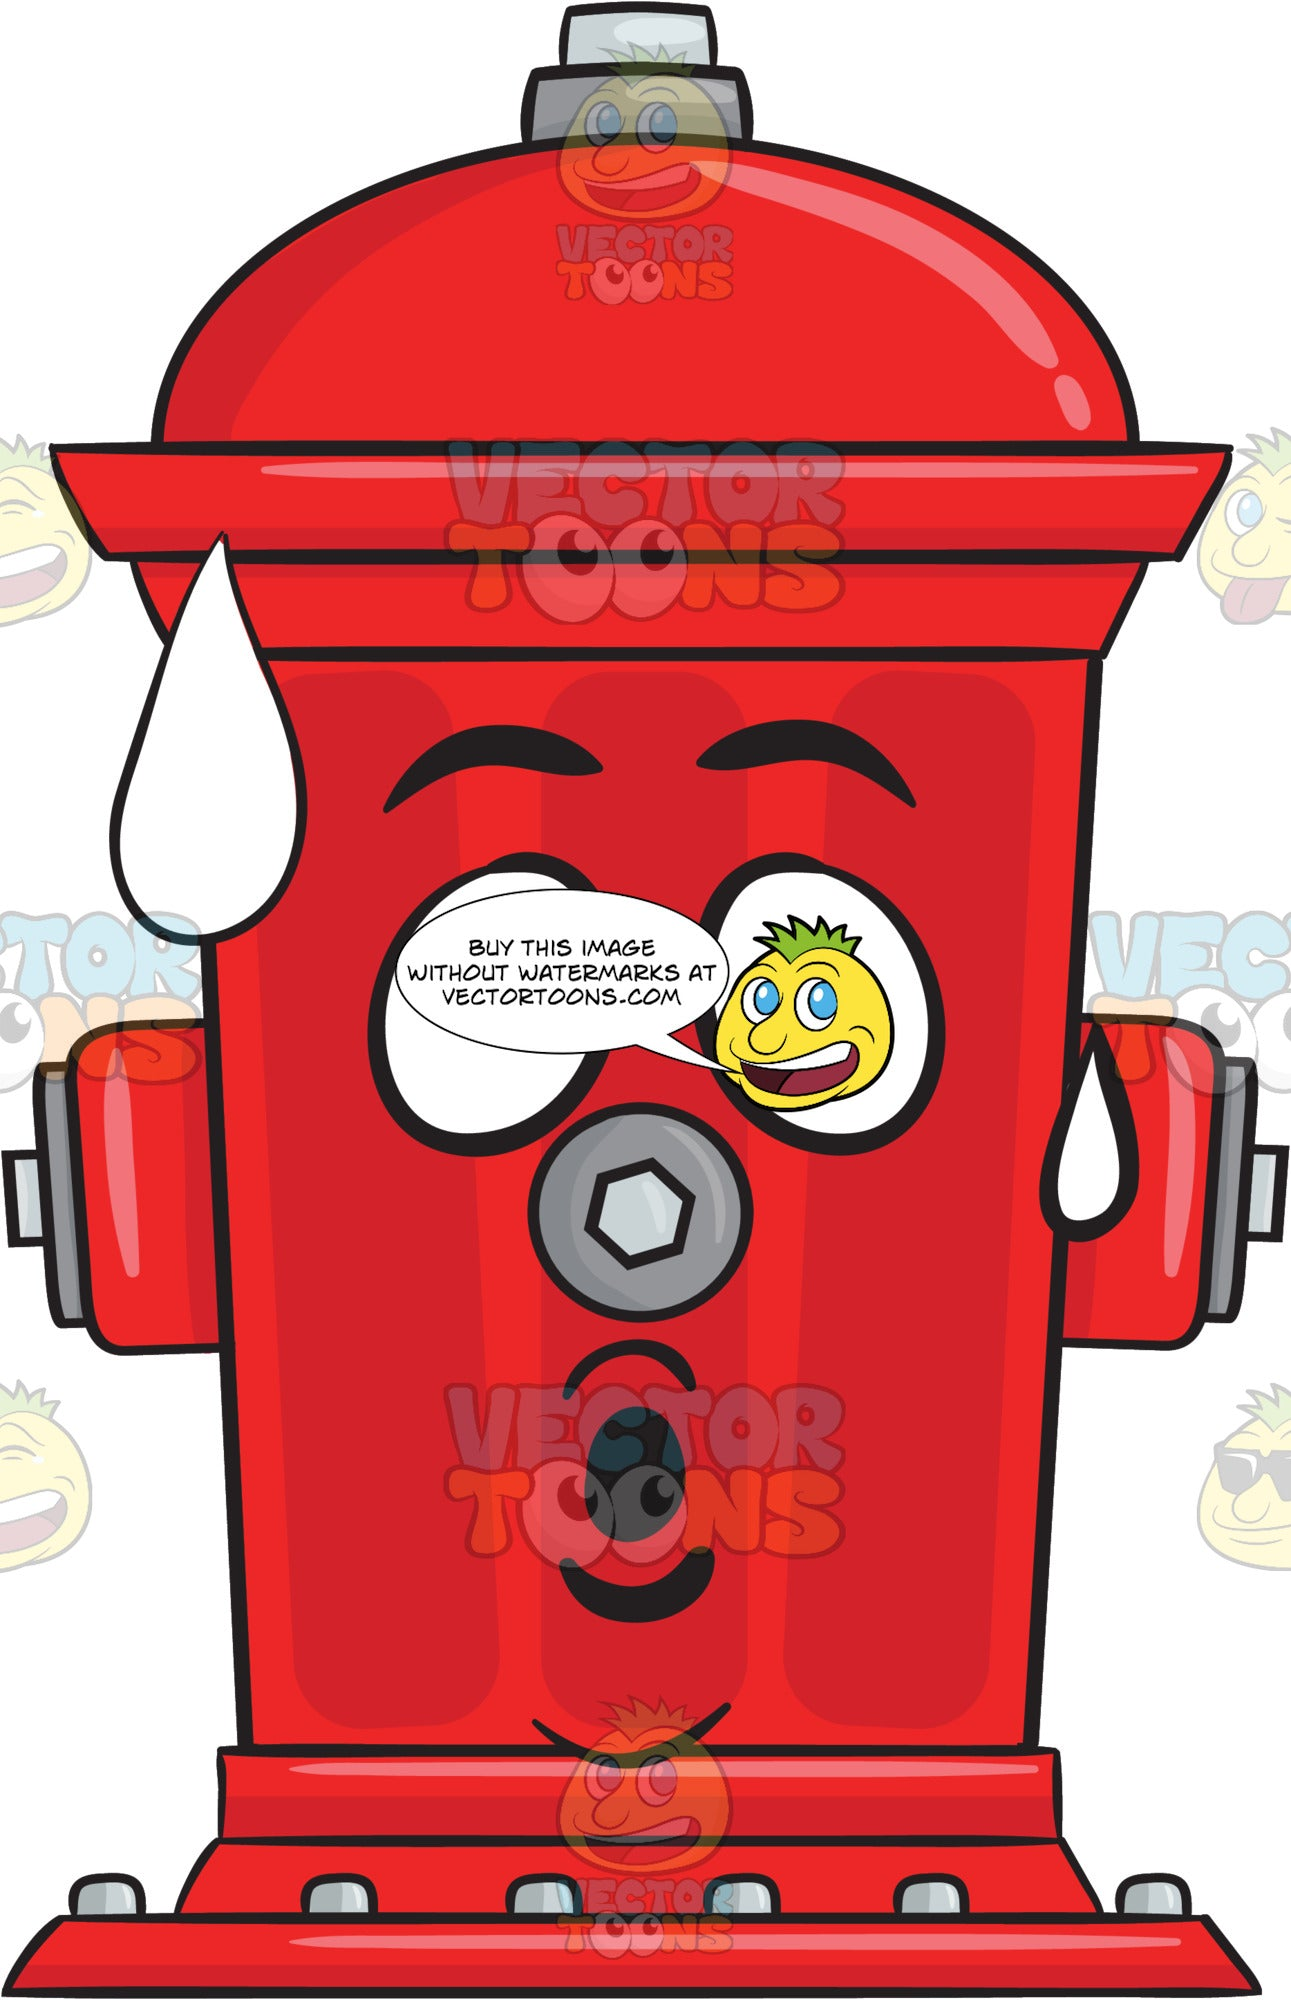 Shocked And Surprised Look On Fire Hydrant Emoji